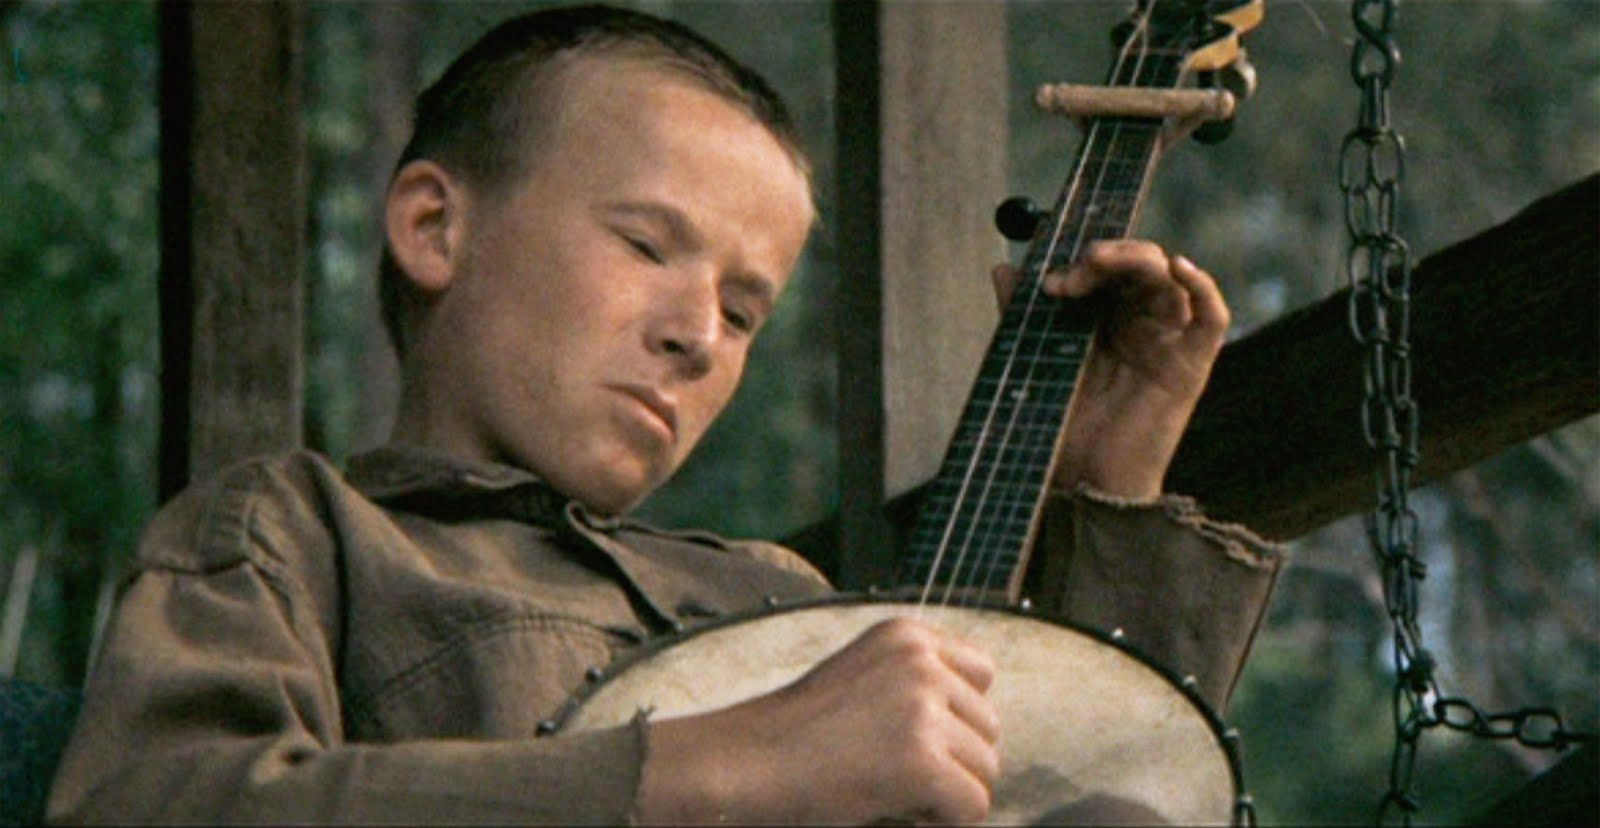 Billy Redden as Lonnie, playing his banjo in 'Deliverance'